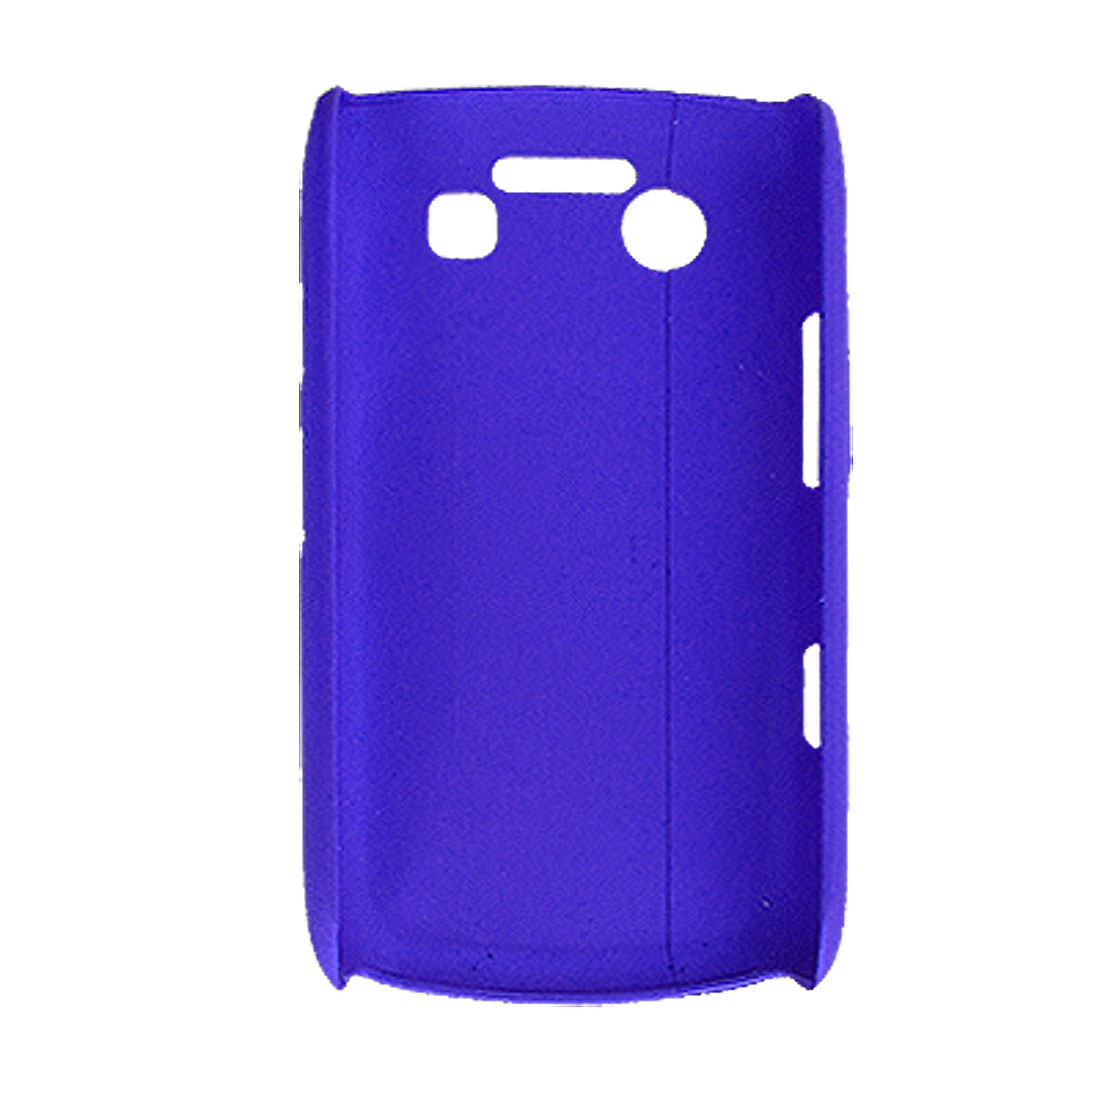 Blue Hard Plastic Protective Back Cover for Blackberry 9700